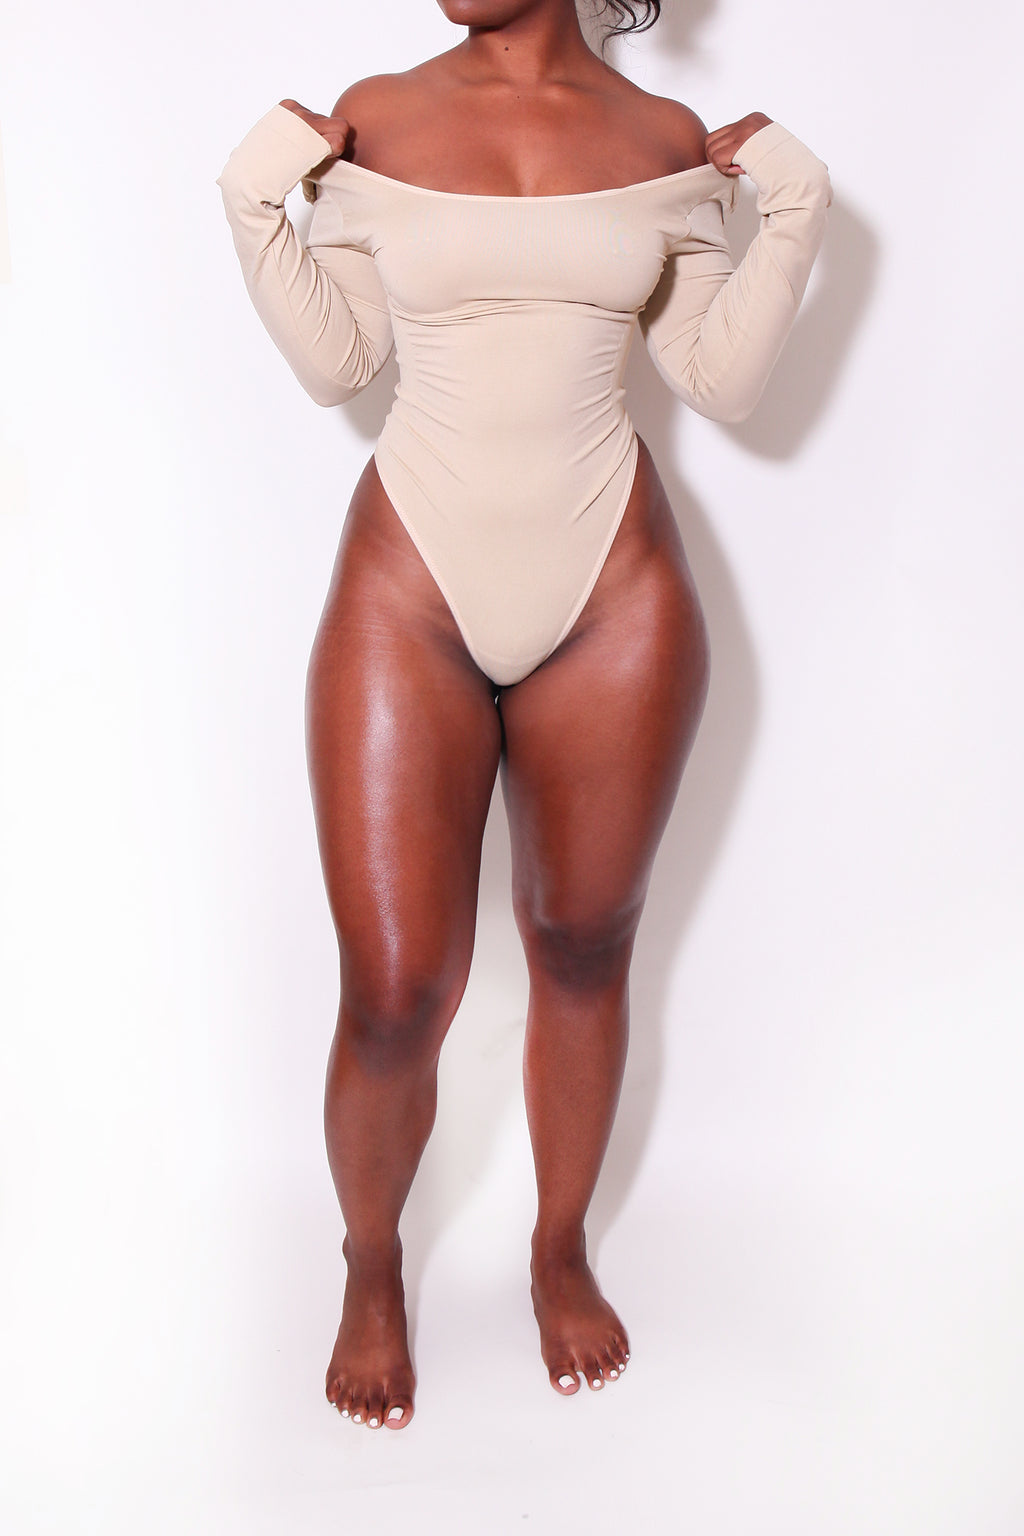 LONG SLEEVE NUDE Body By Babes Bodysuit (Fits up to PLUS) - Babes And Felines | Specializing in Fashionable Staple Pieces for Every Shape and Size